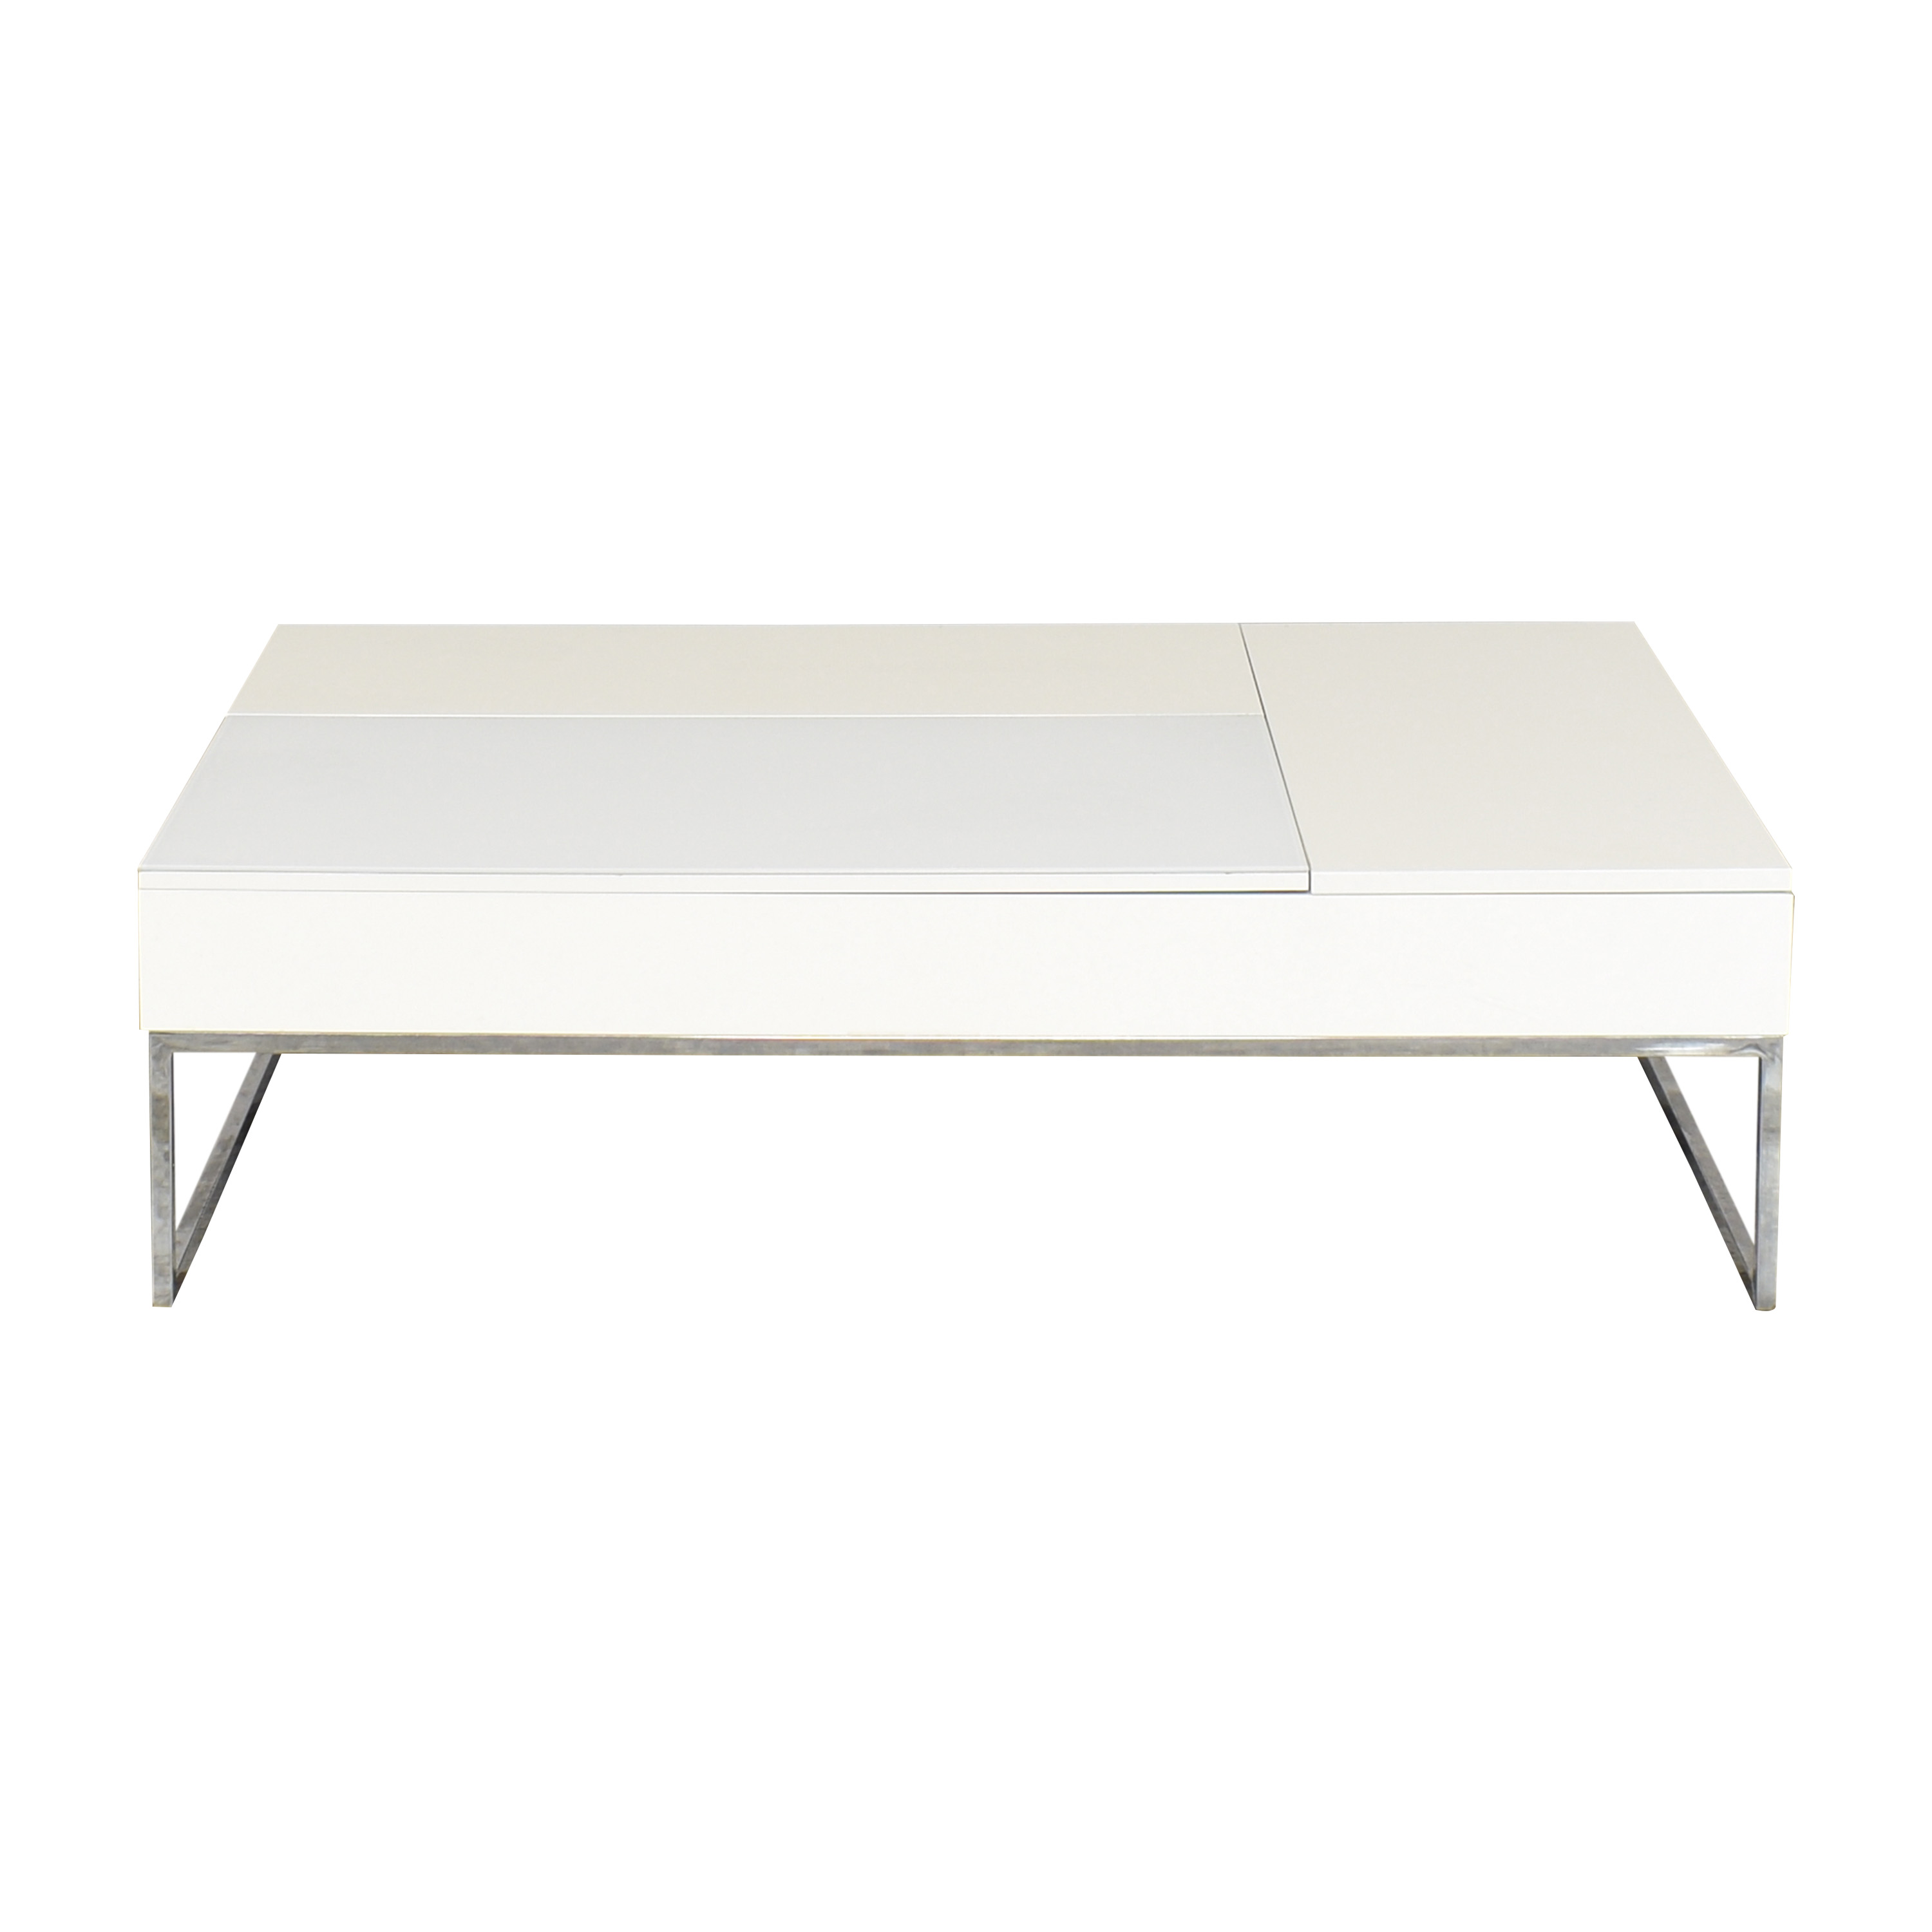 BoConcept Bo Concept Chiva Coffee Table Functional Coffee Table with Storage ma